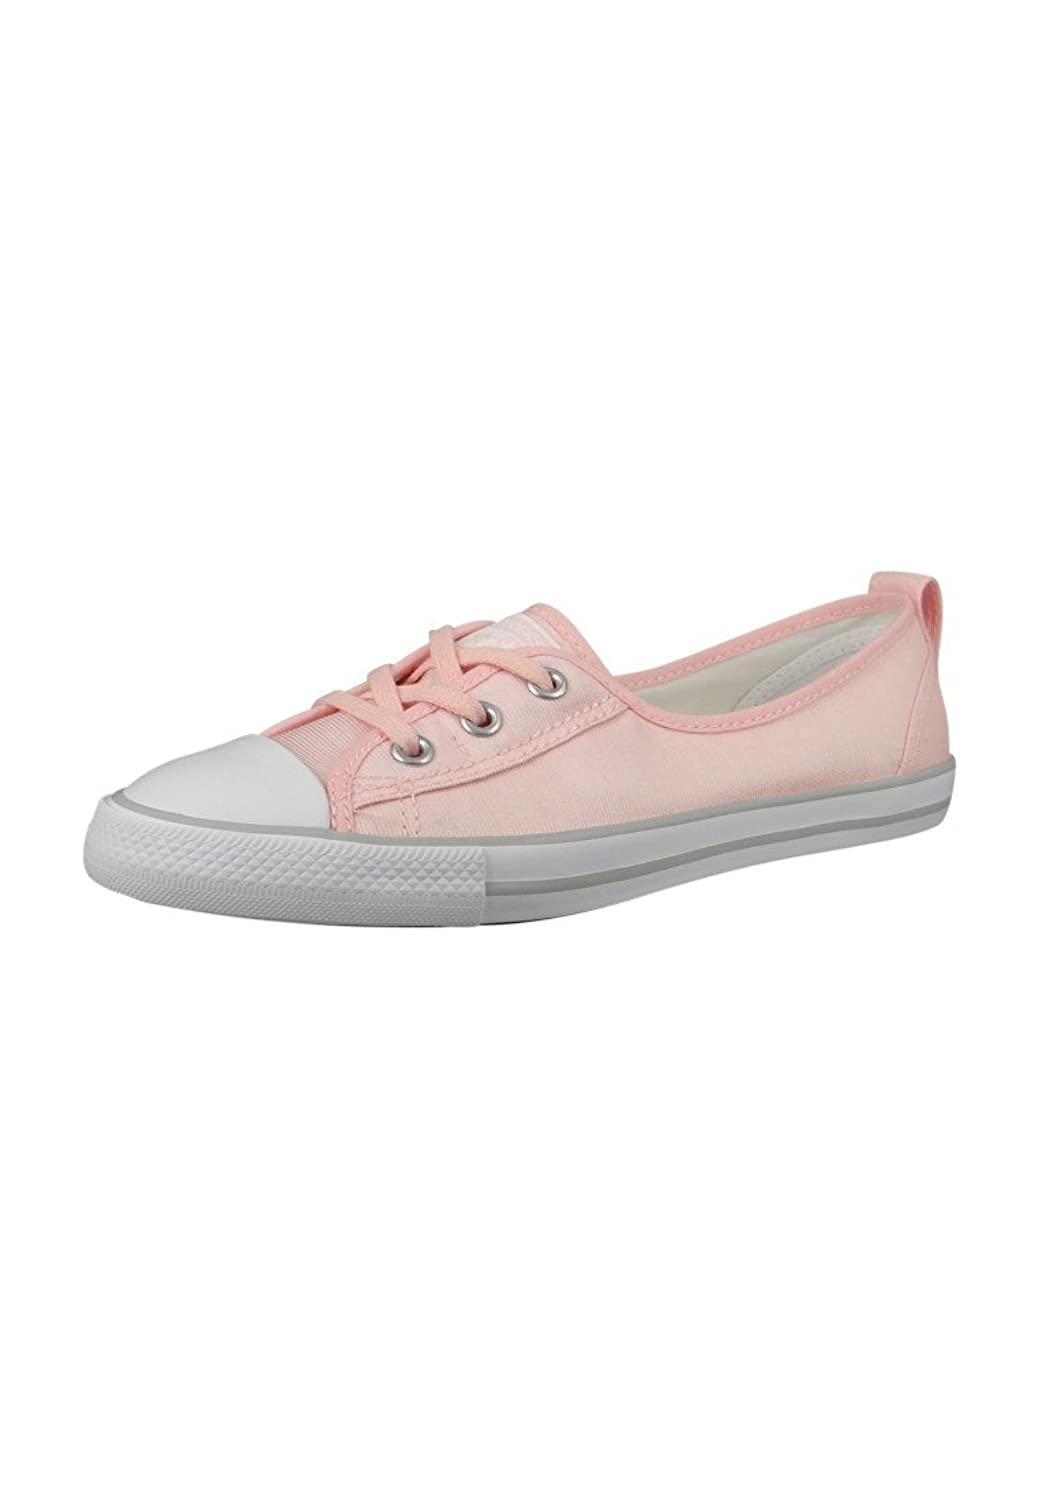 converse chuck taylor all star ballet lace 39